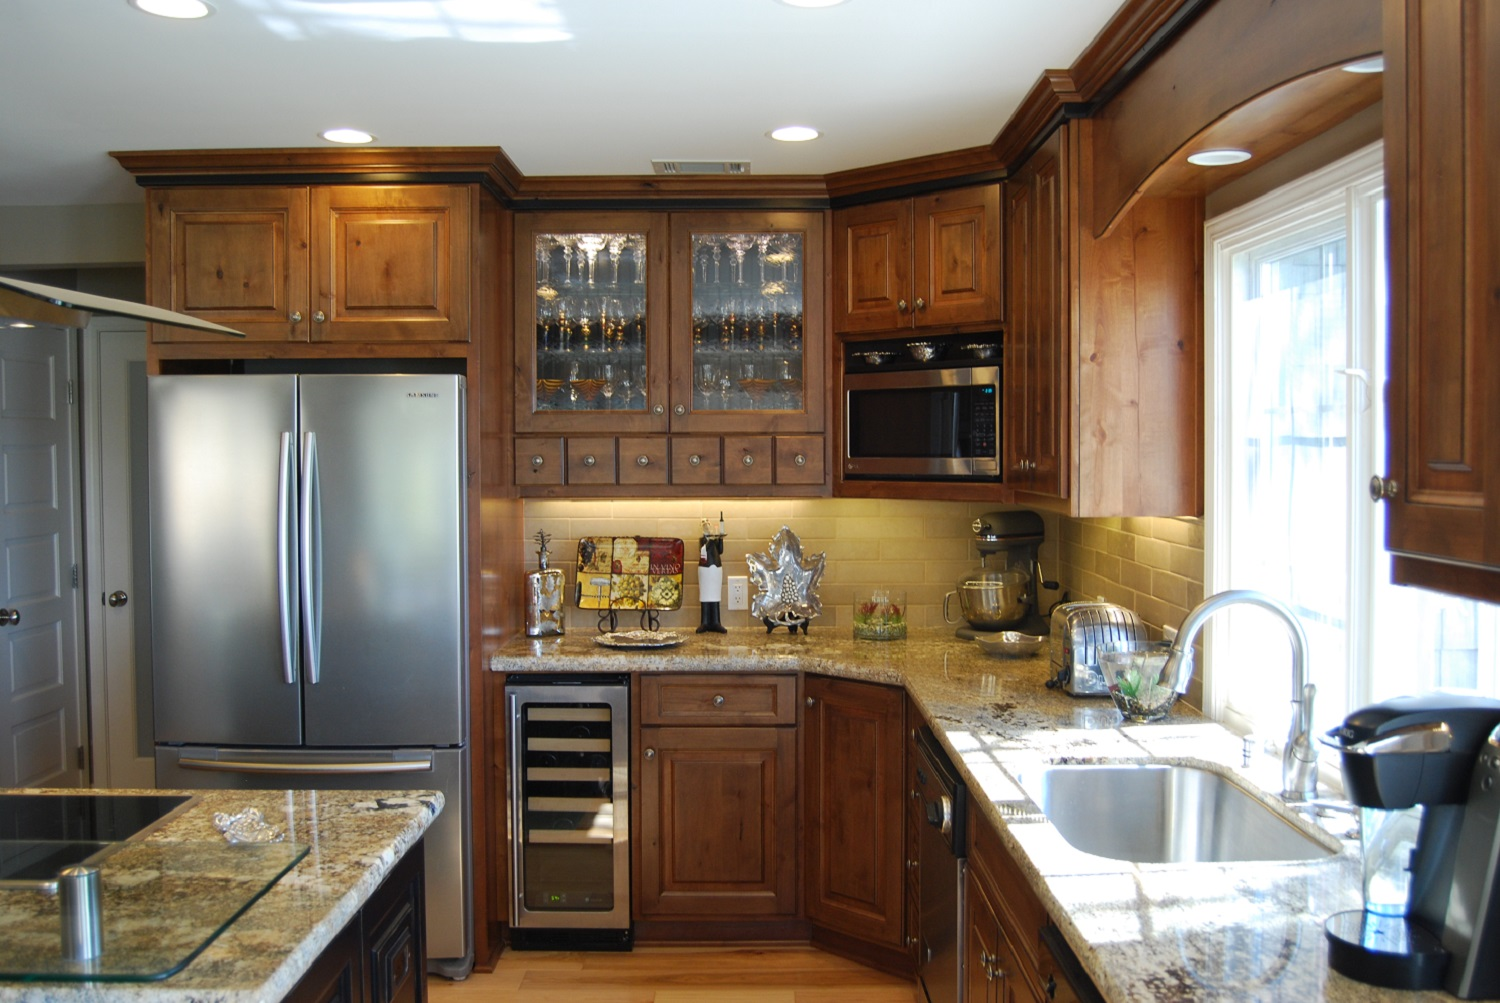 Glass insert upper cabinets, under counter wine cooler, mini upper cabinet drawers